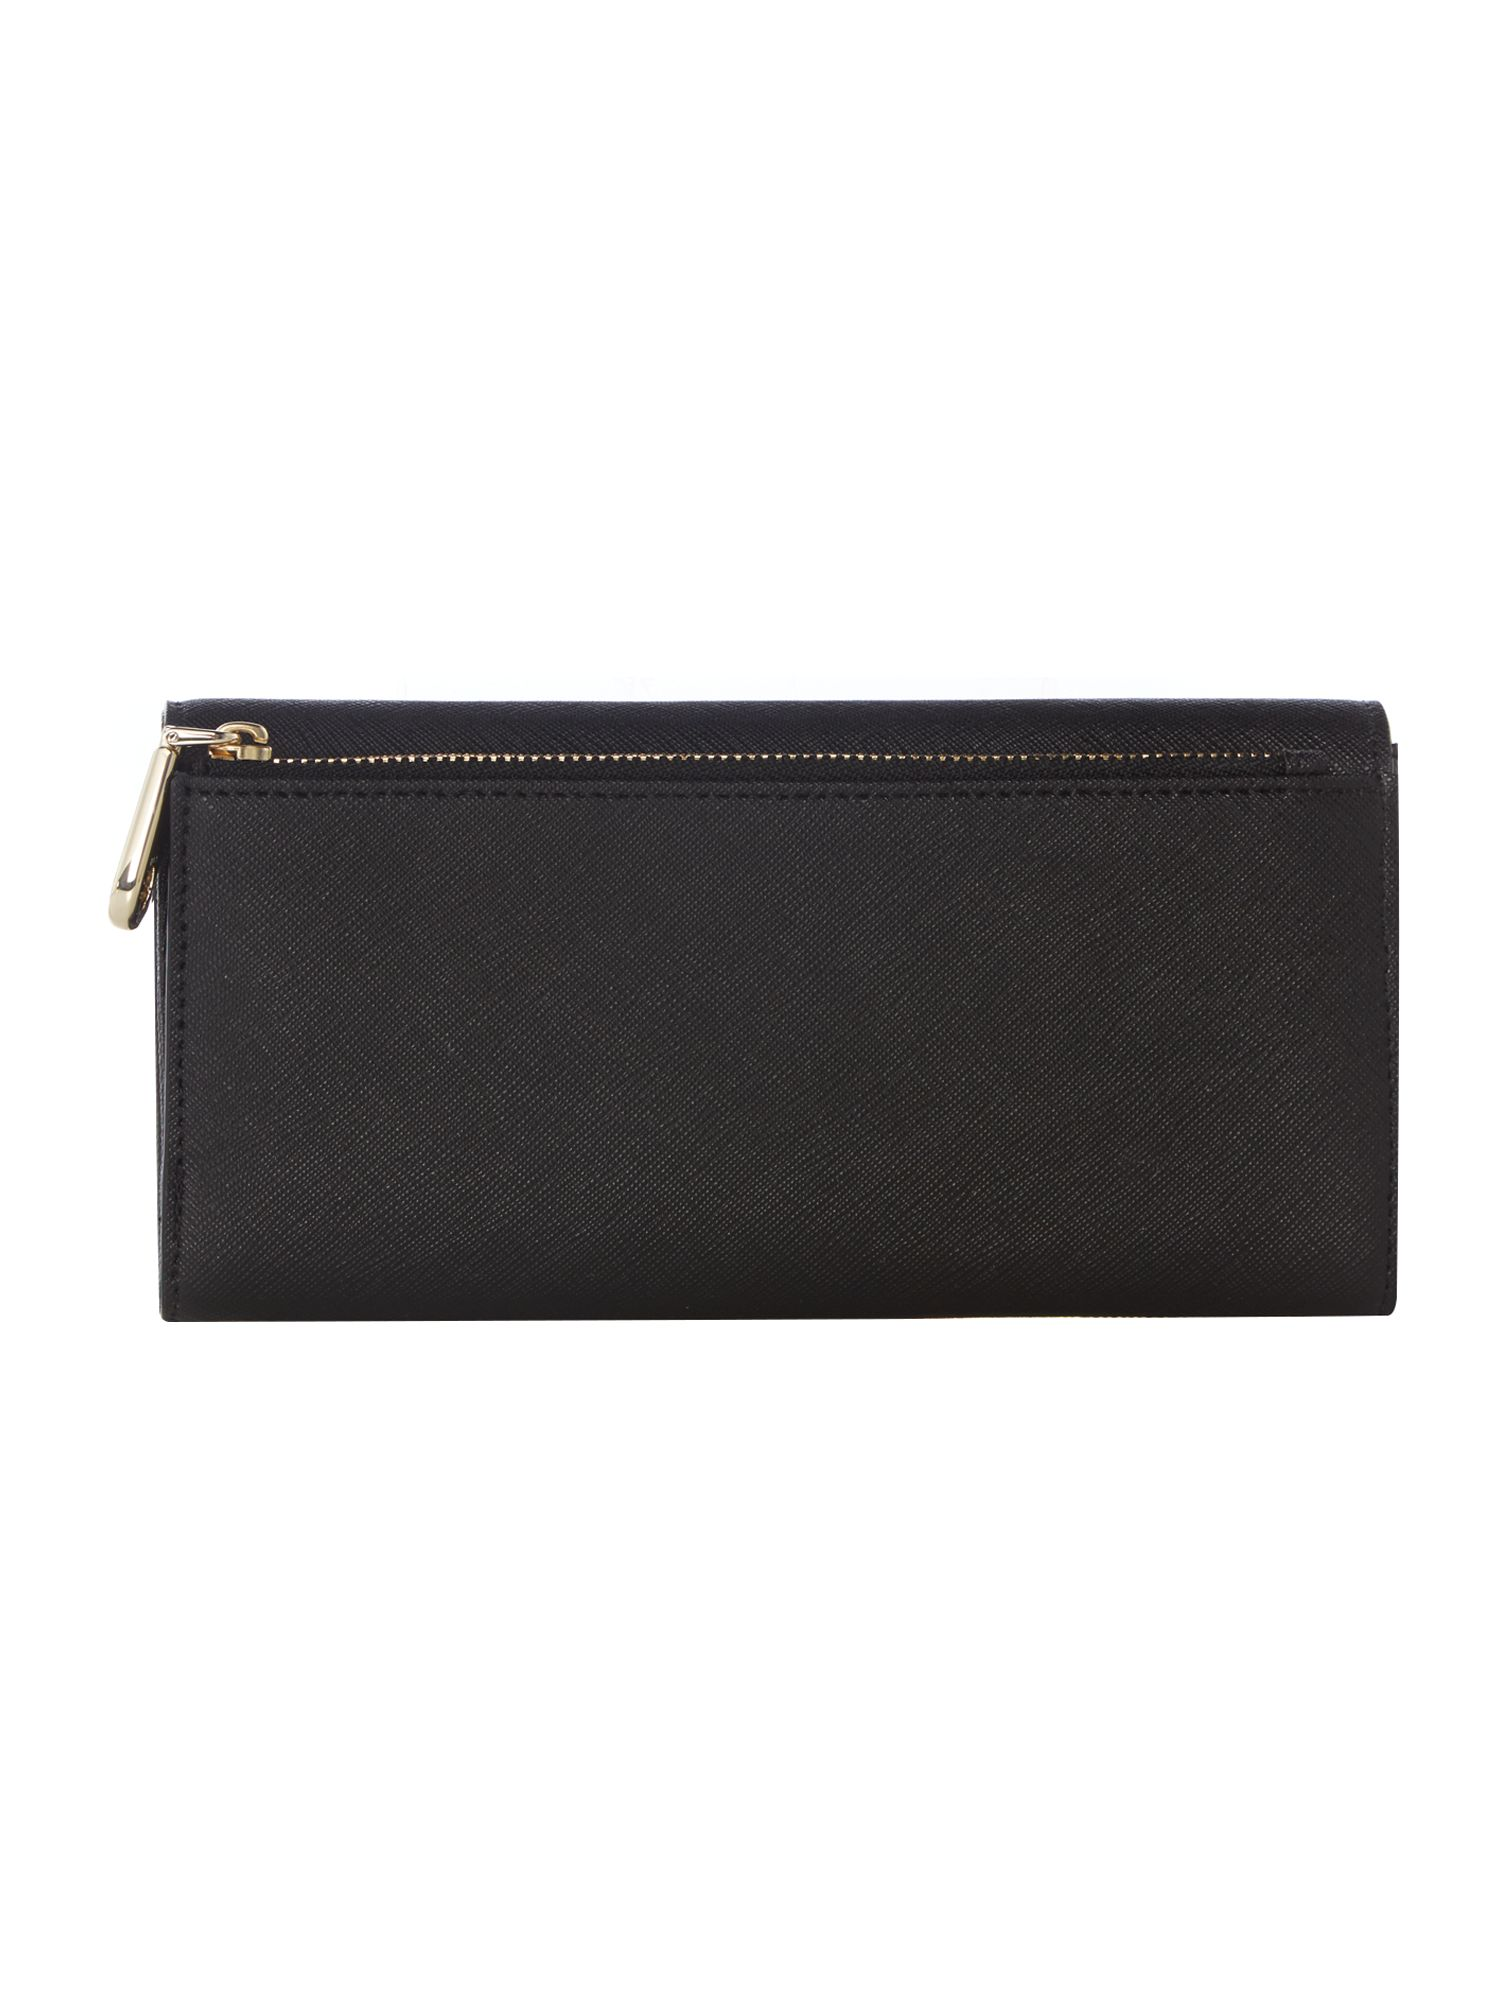 Bryant park black large flap over purse